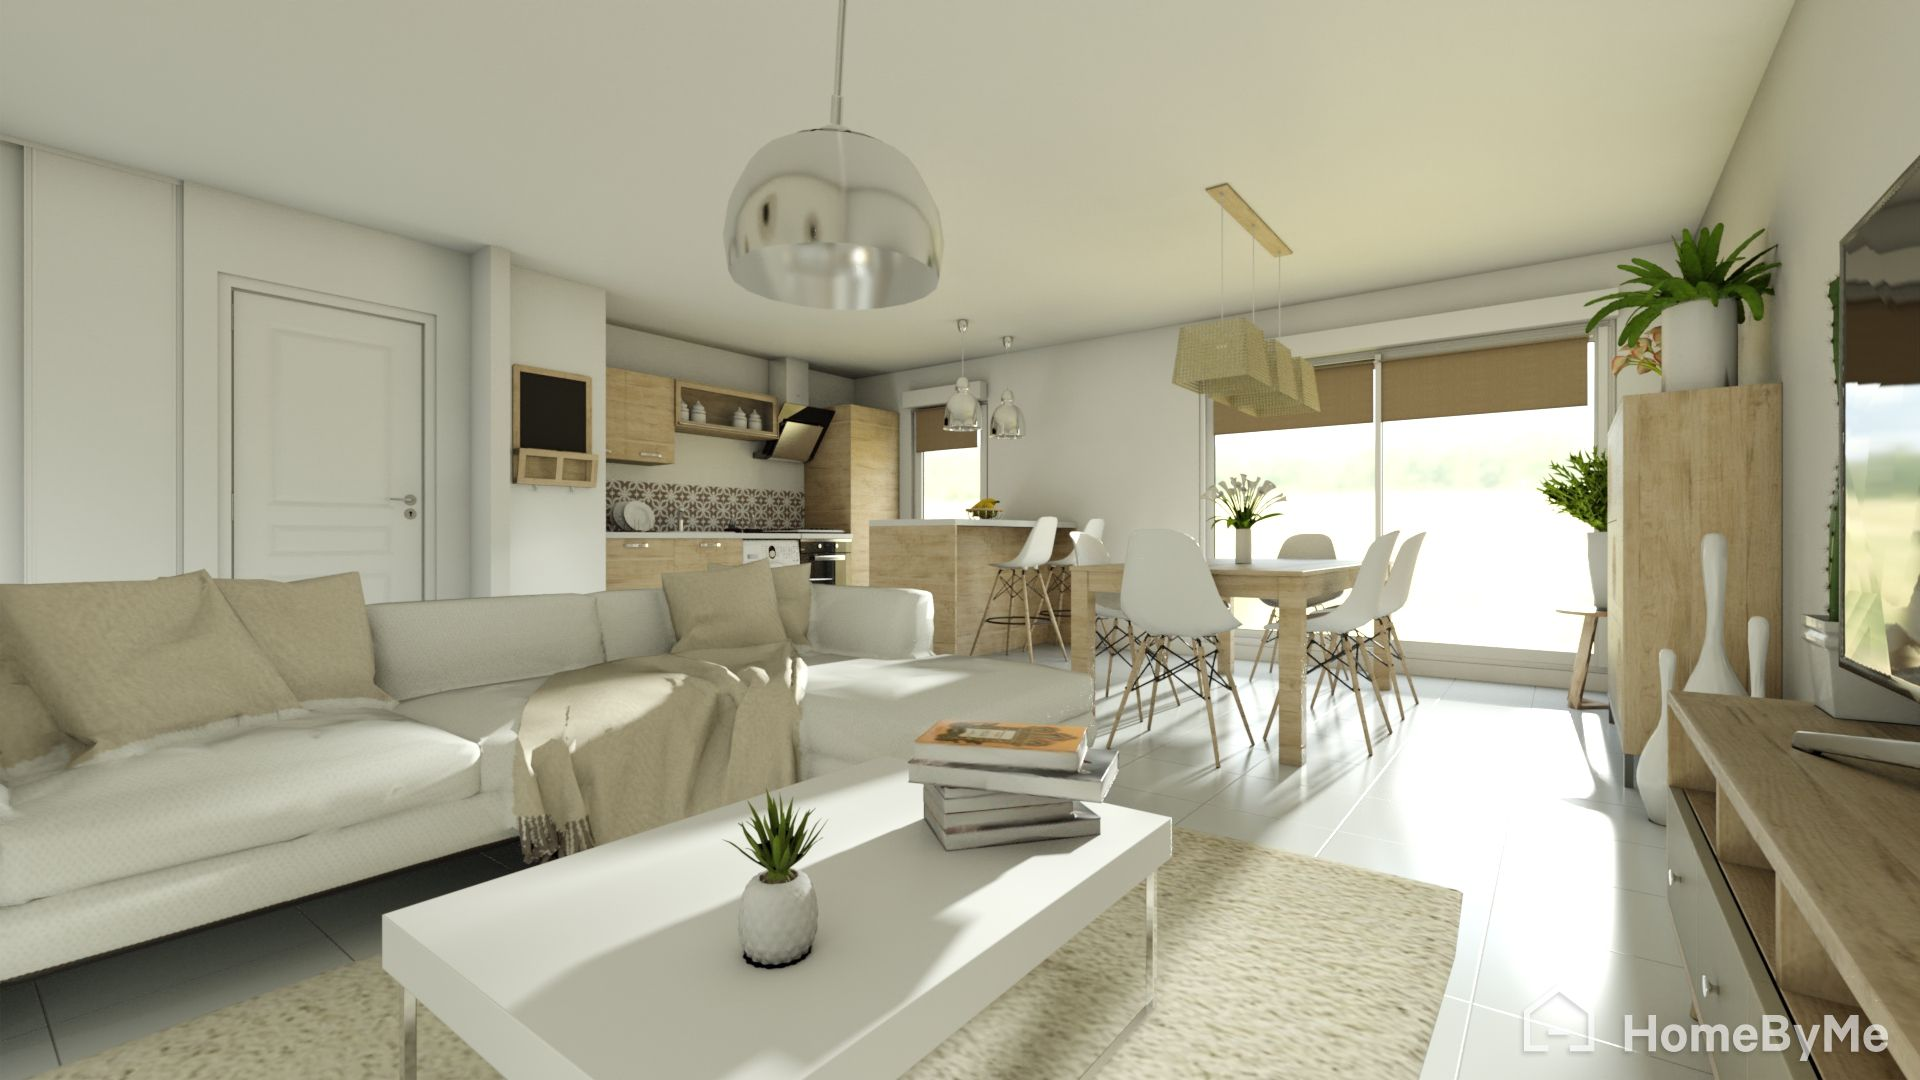 Free and online 3D home design planner - HomeBy